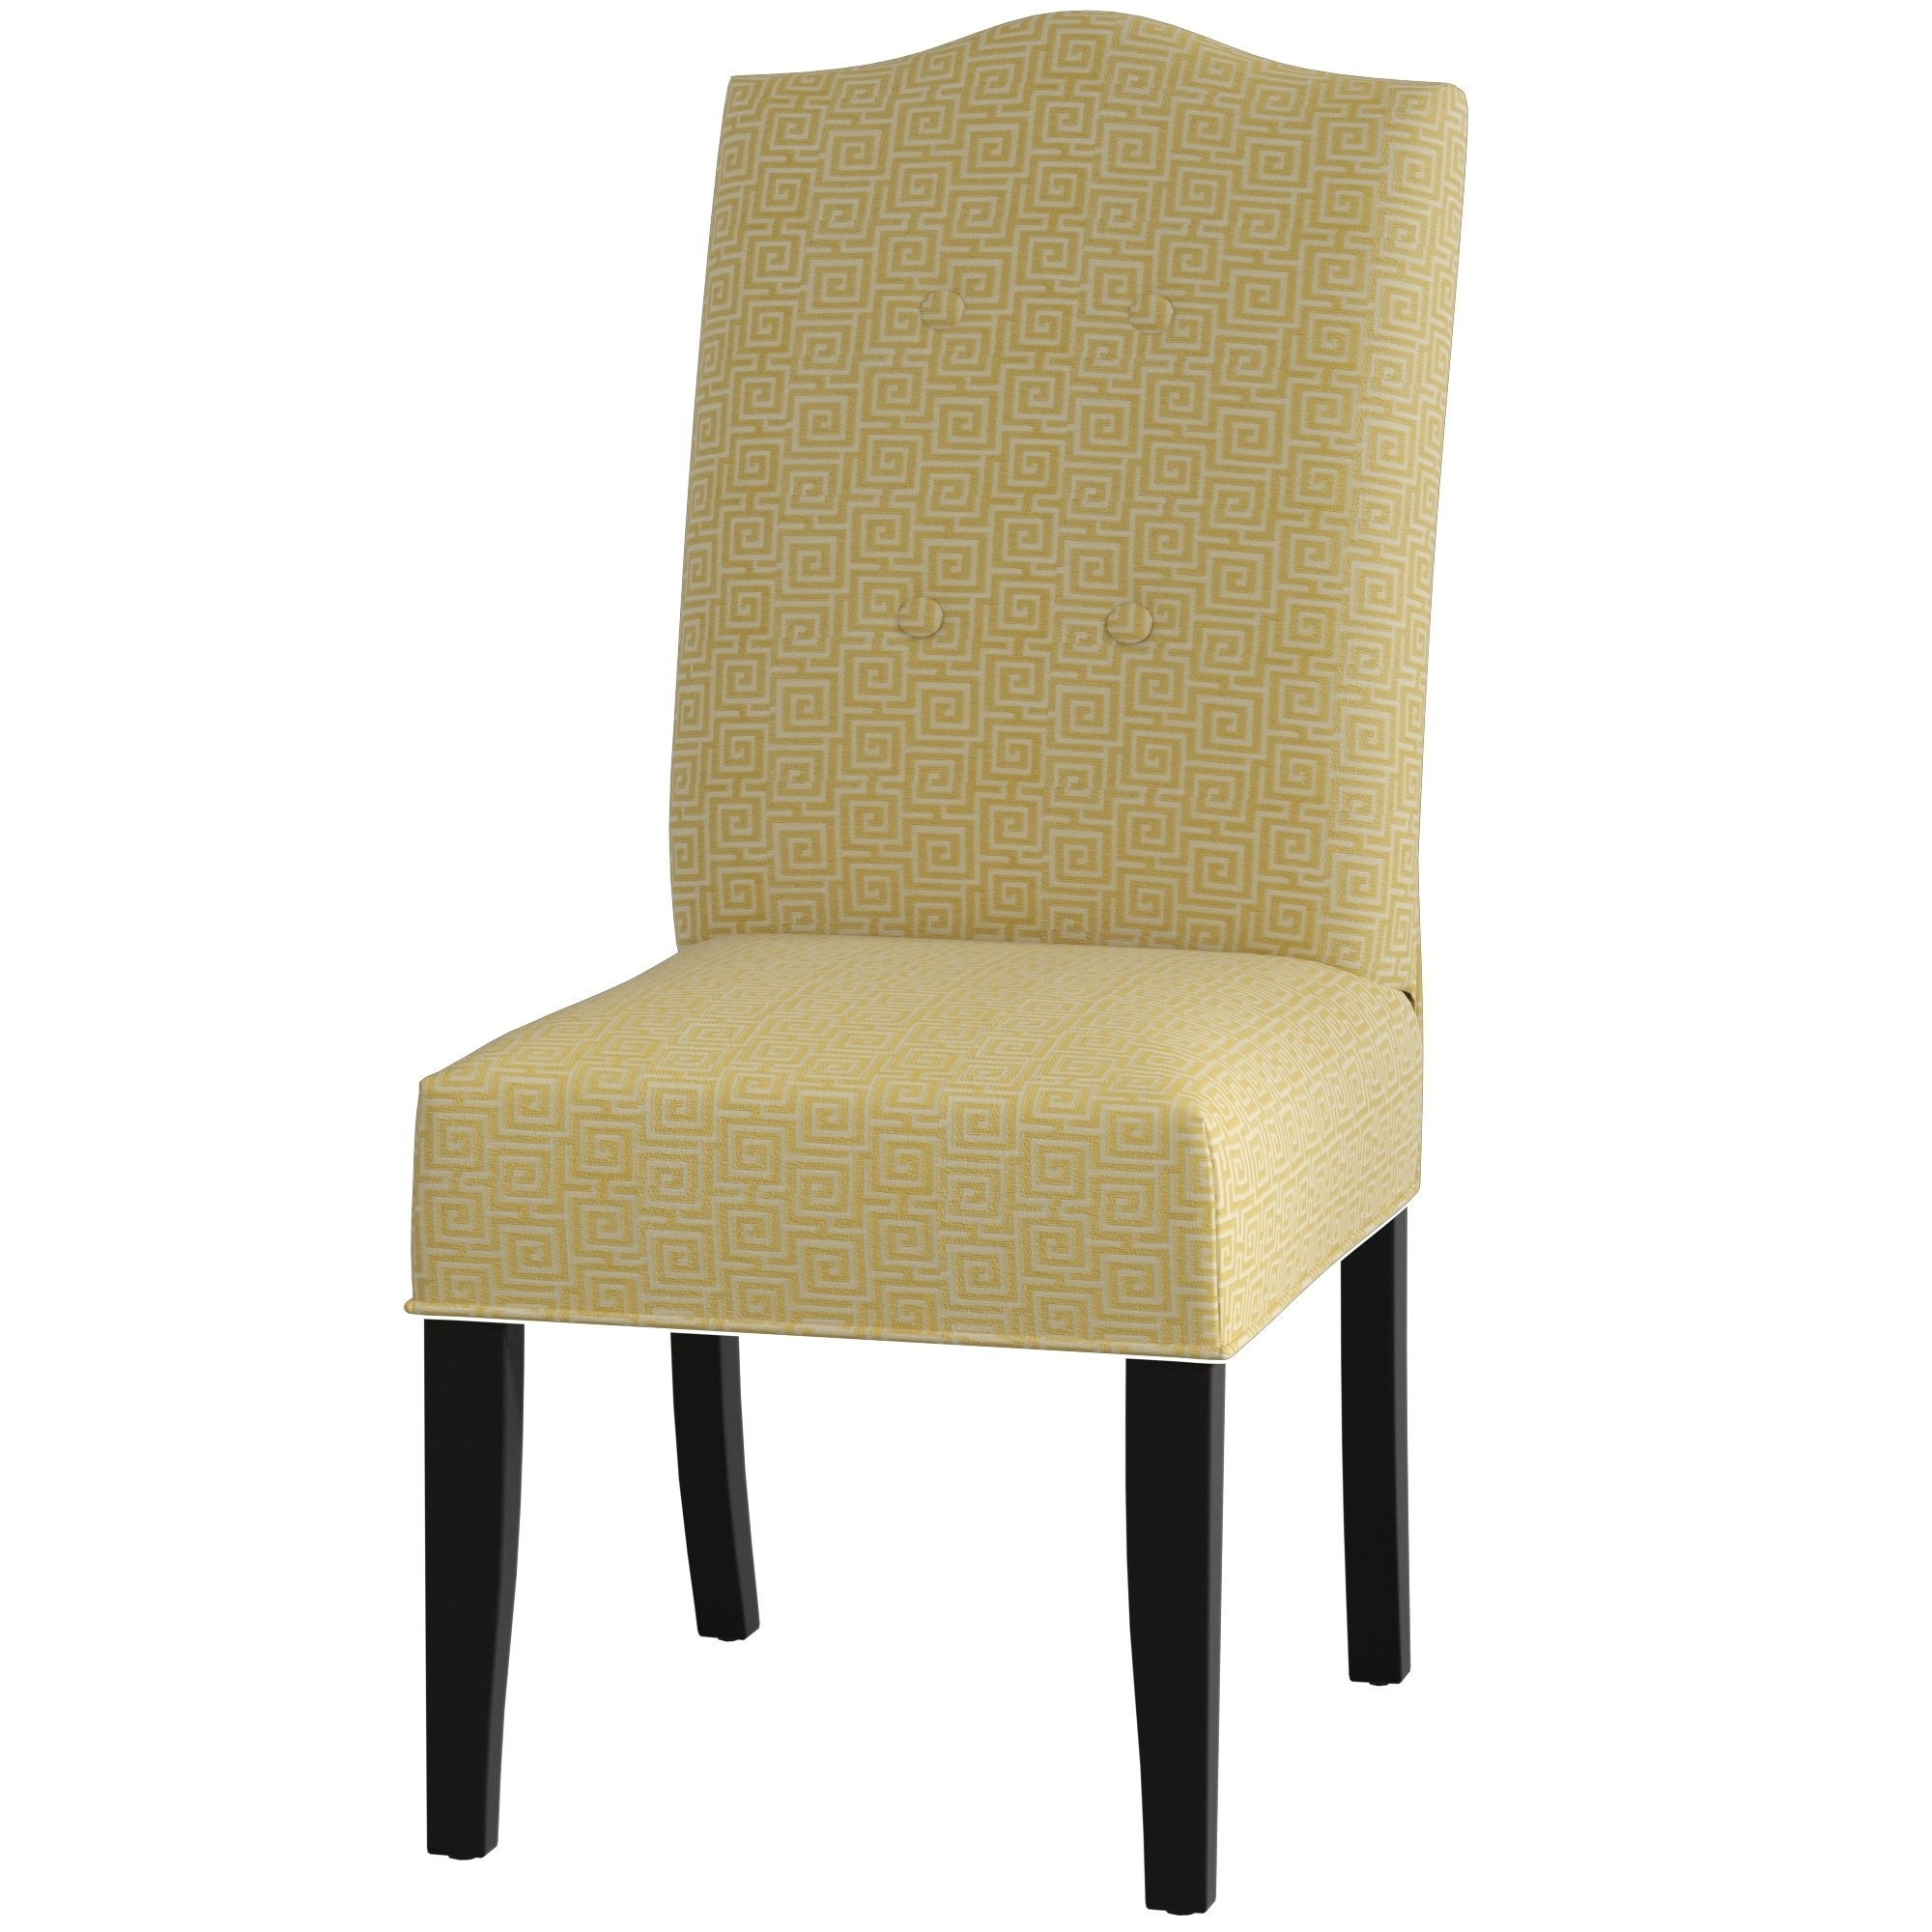 Candice Ii Upholstered Side Chairs With Well Known Hekman Candice Upholstered Dining Chair (View 12 of 20)